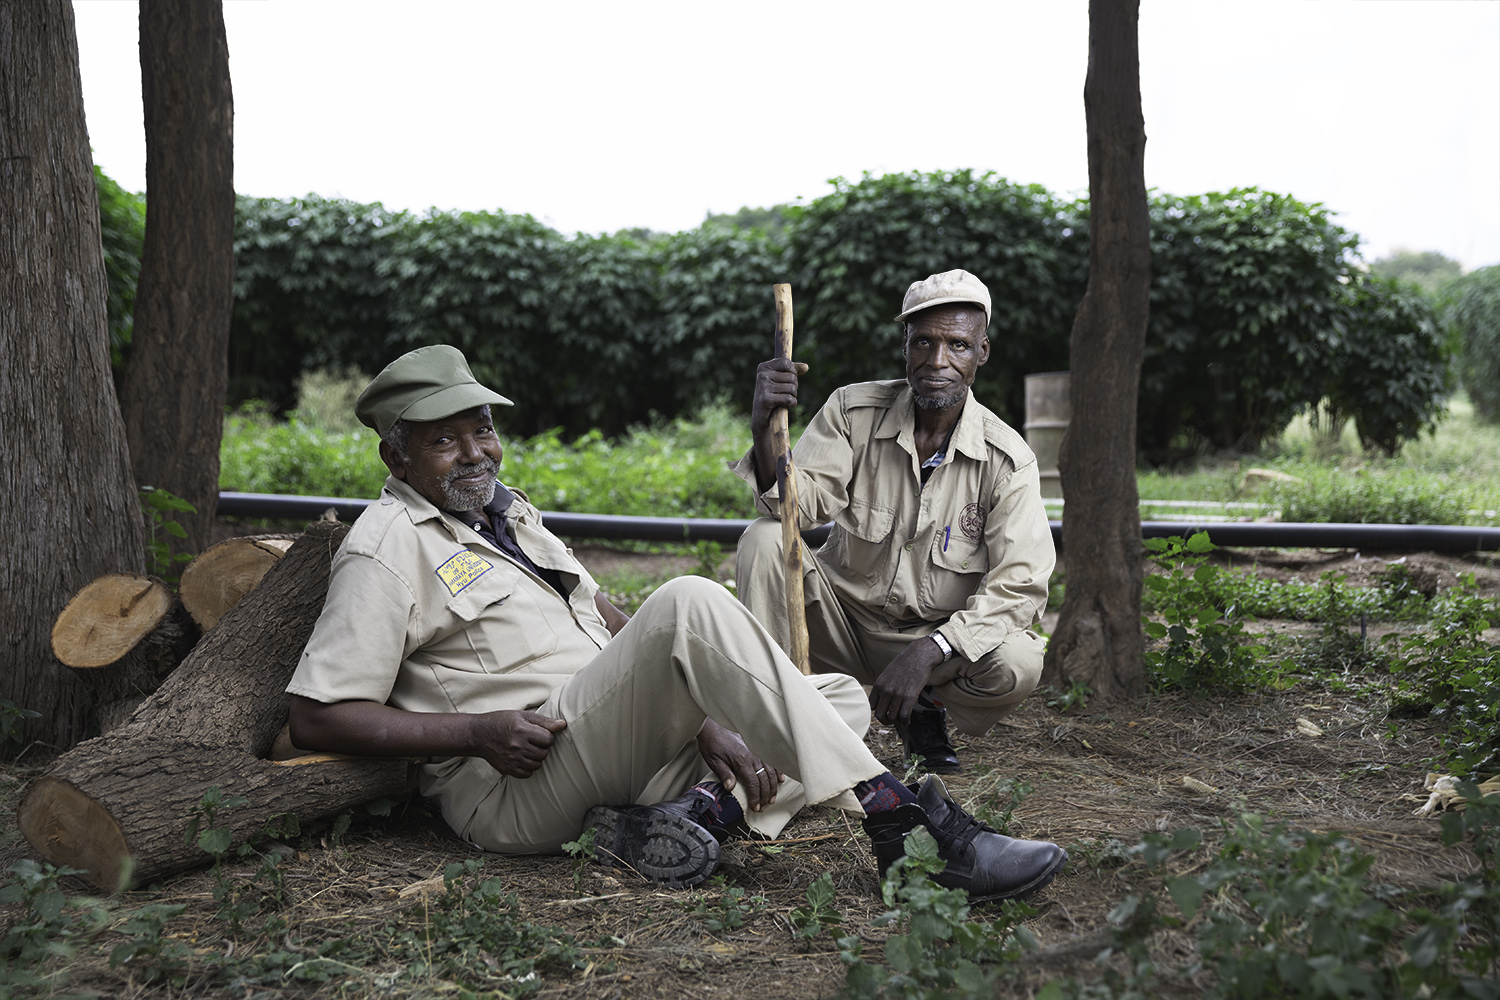 Copy of Two guards sitting at a farm in Ethiopia